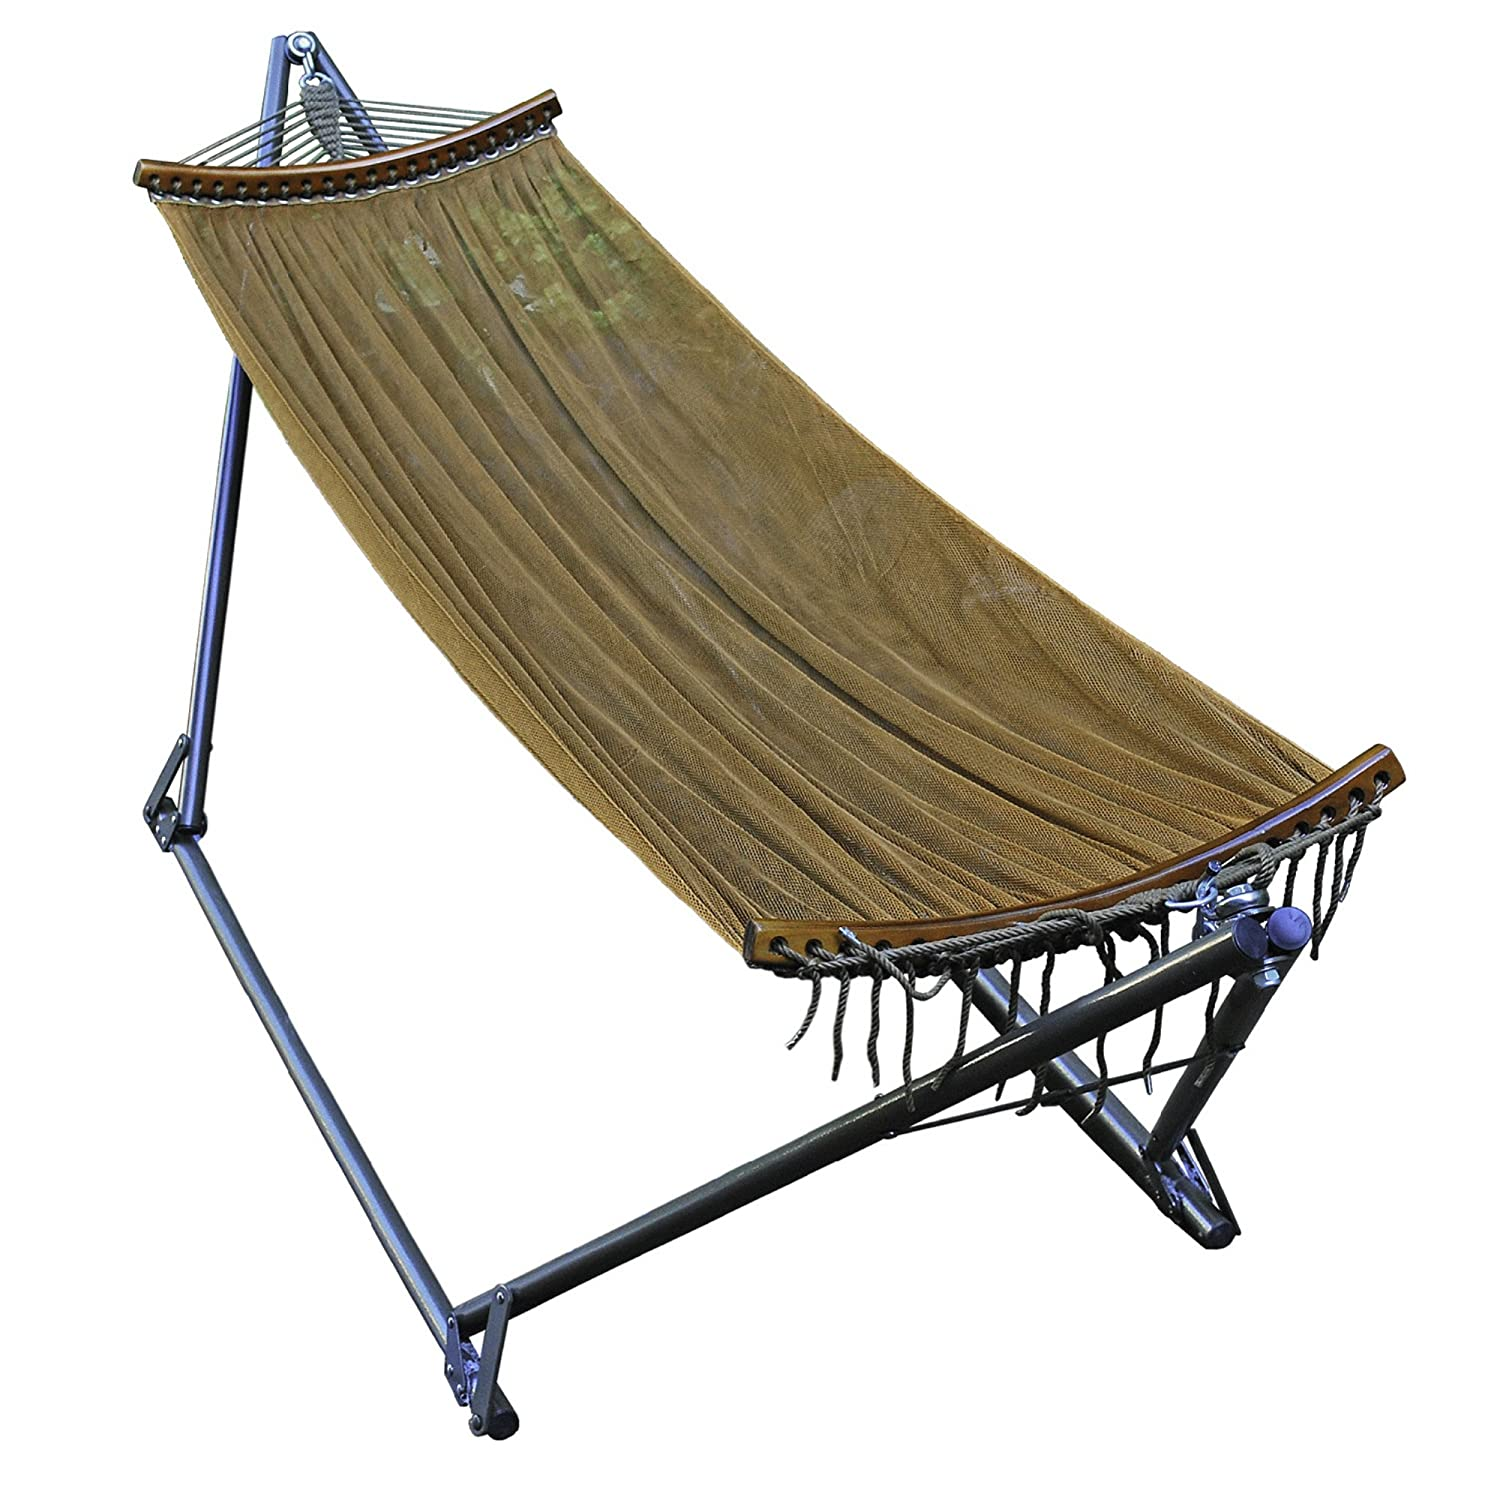 Guide gear portable folding hammock 172580 hammocks at sportsman s - Amazon Com Algoma 4912 E Z Cozy Folding Hammock Patio Lawn